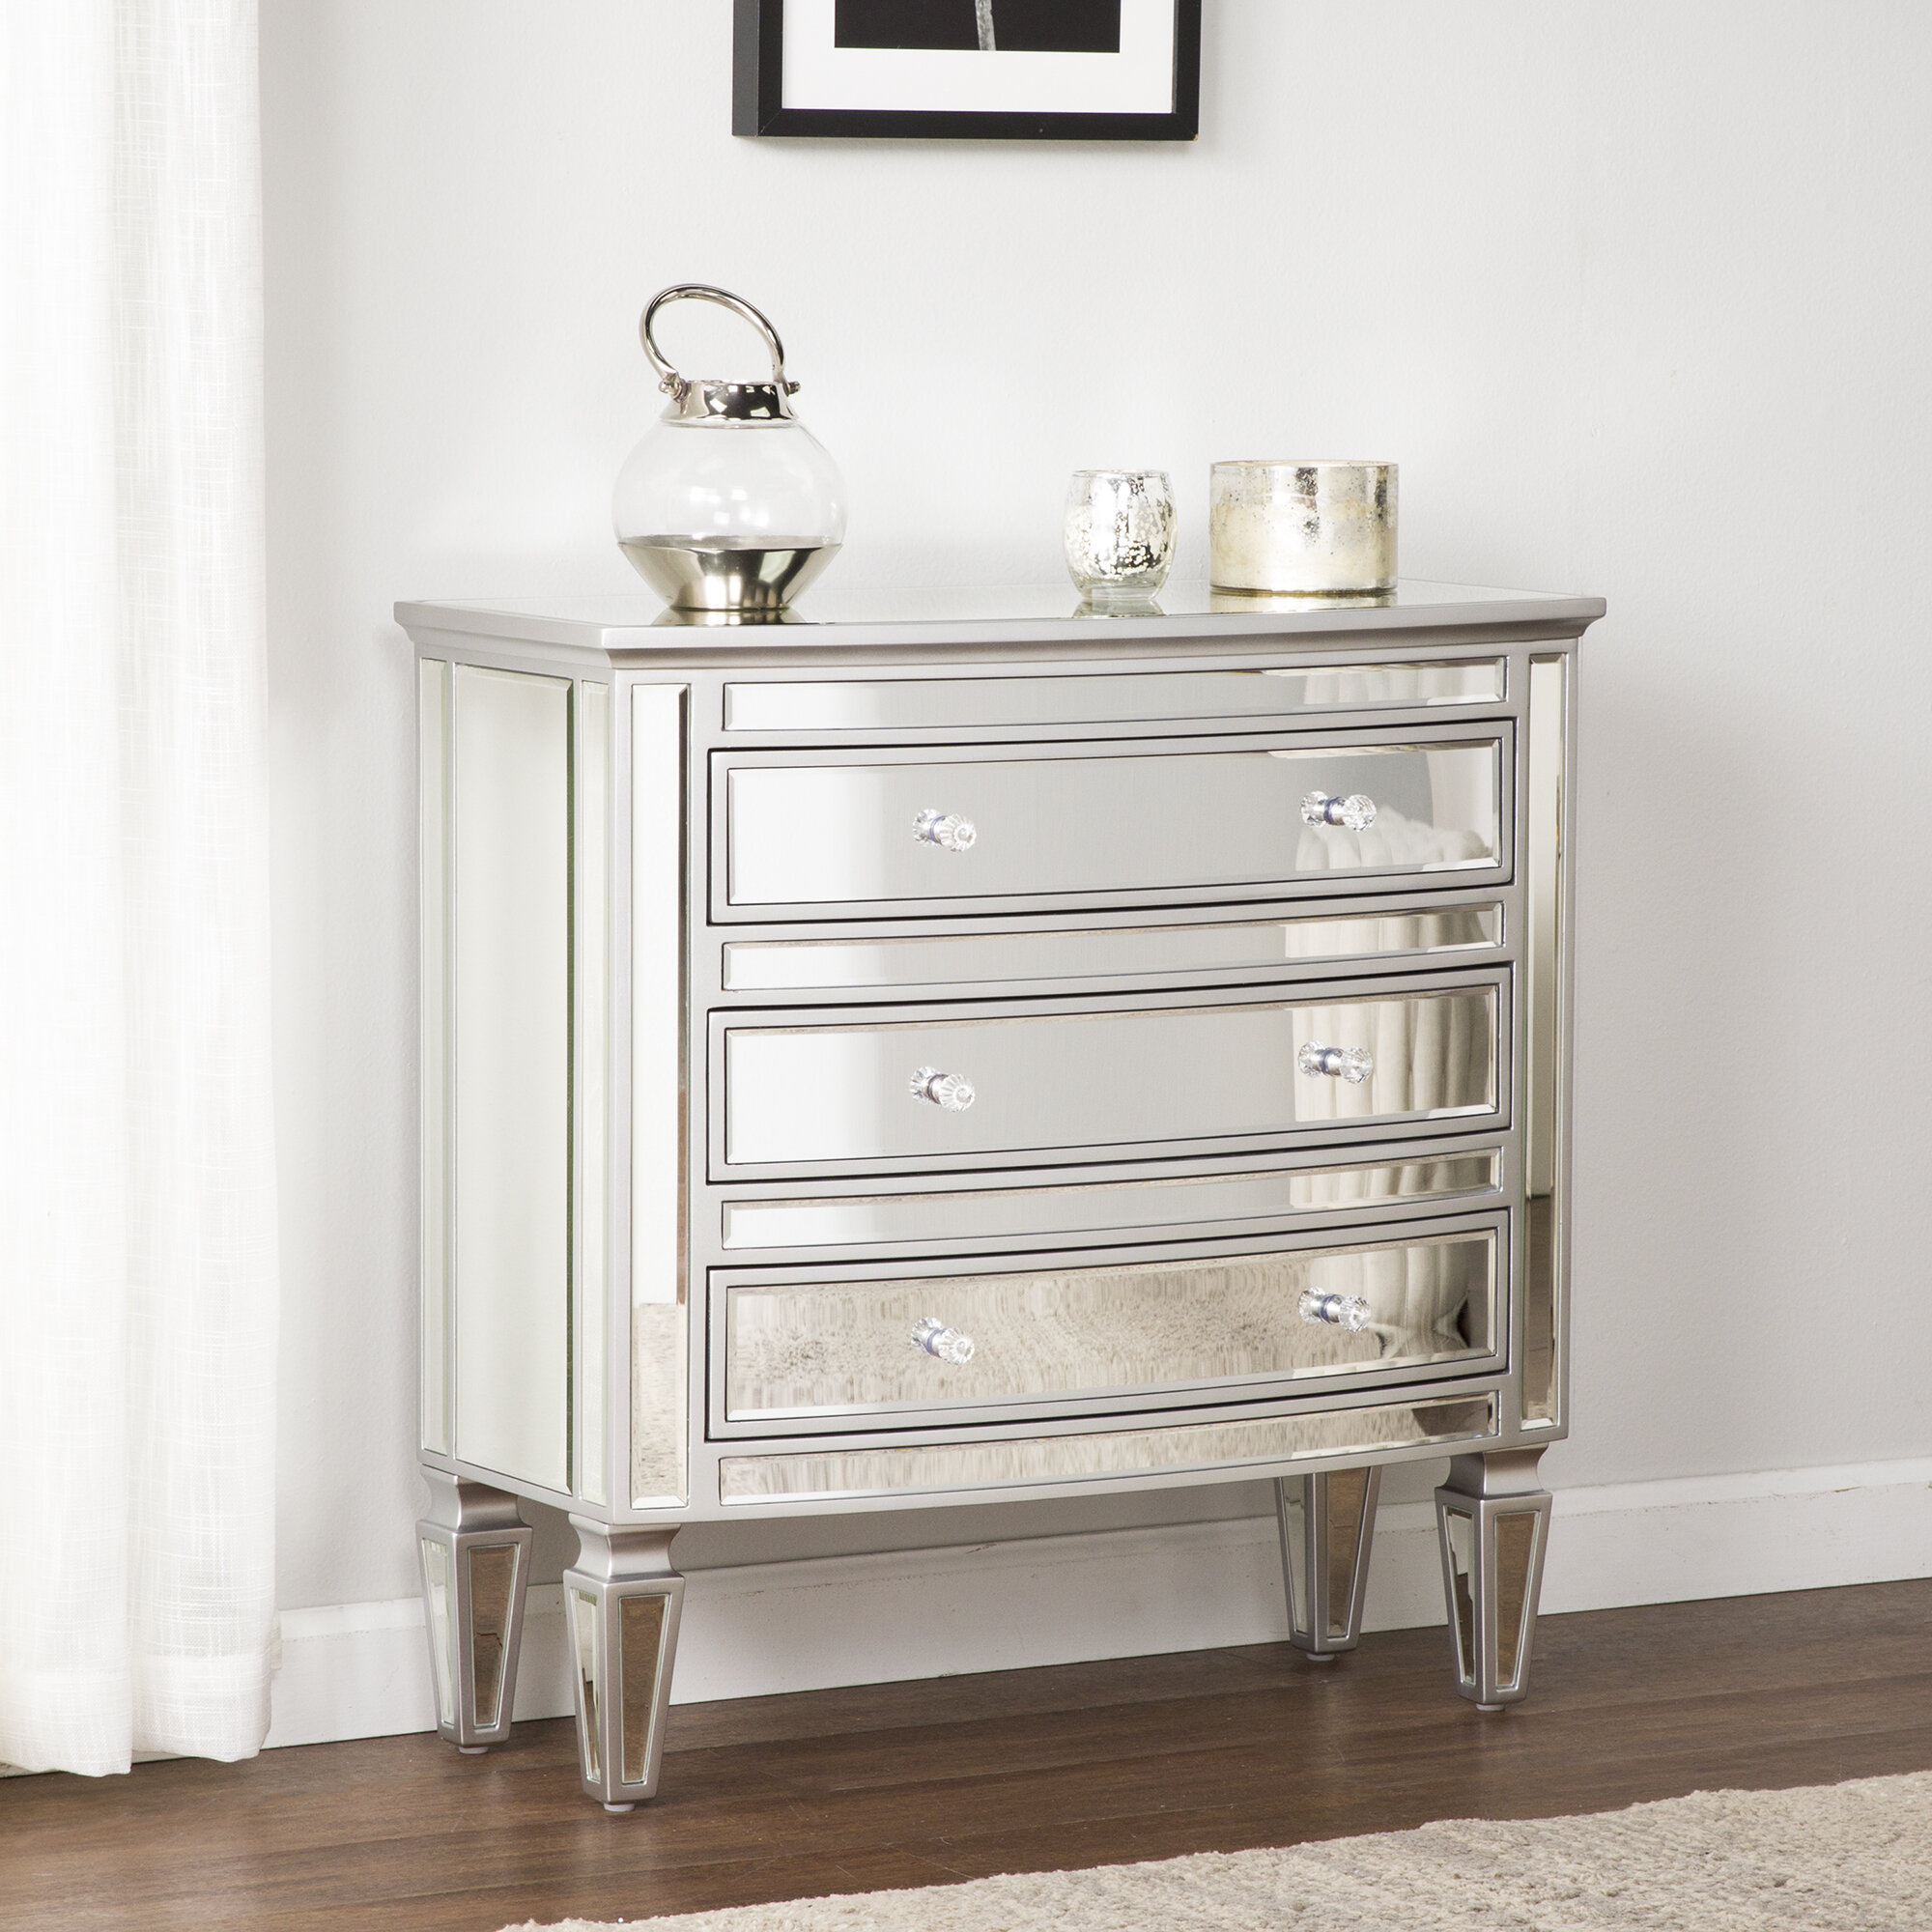 trim threshold height products antique living room drawer chest width furniture accents chests hooker item mirrored drawers